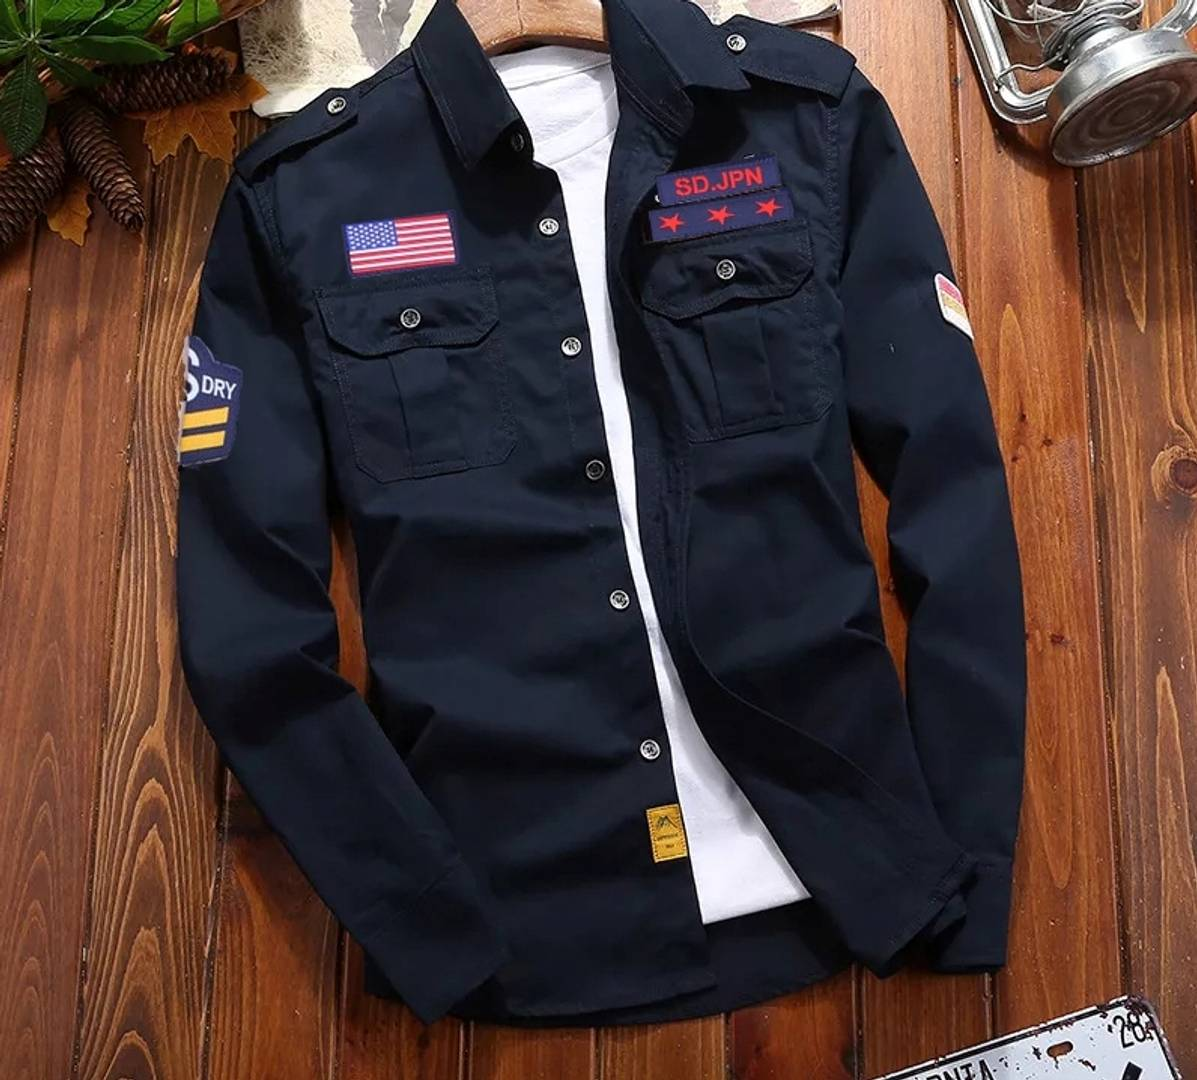 Fashionable Navy Blue Cargo Full Sleeves Shirt For Men (Only Shirt)